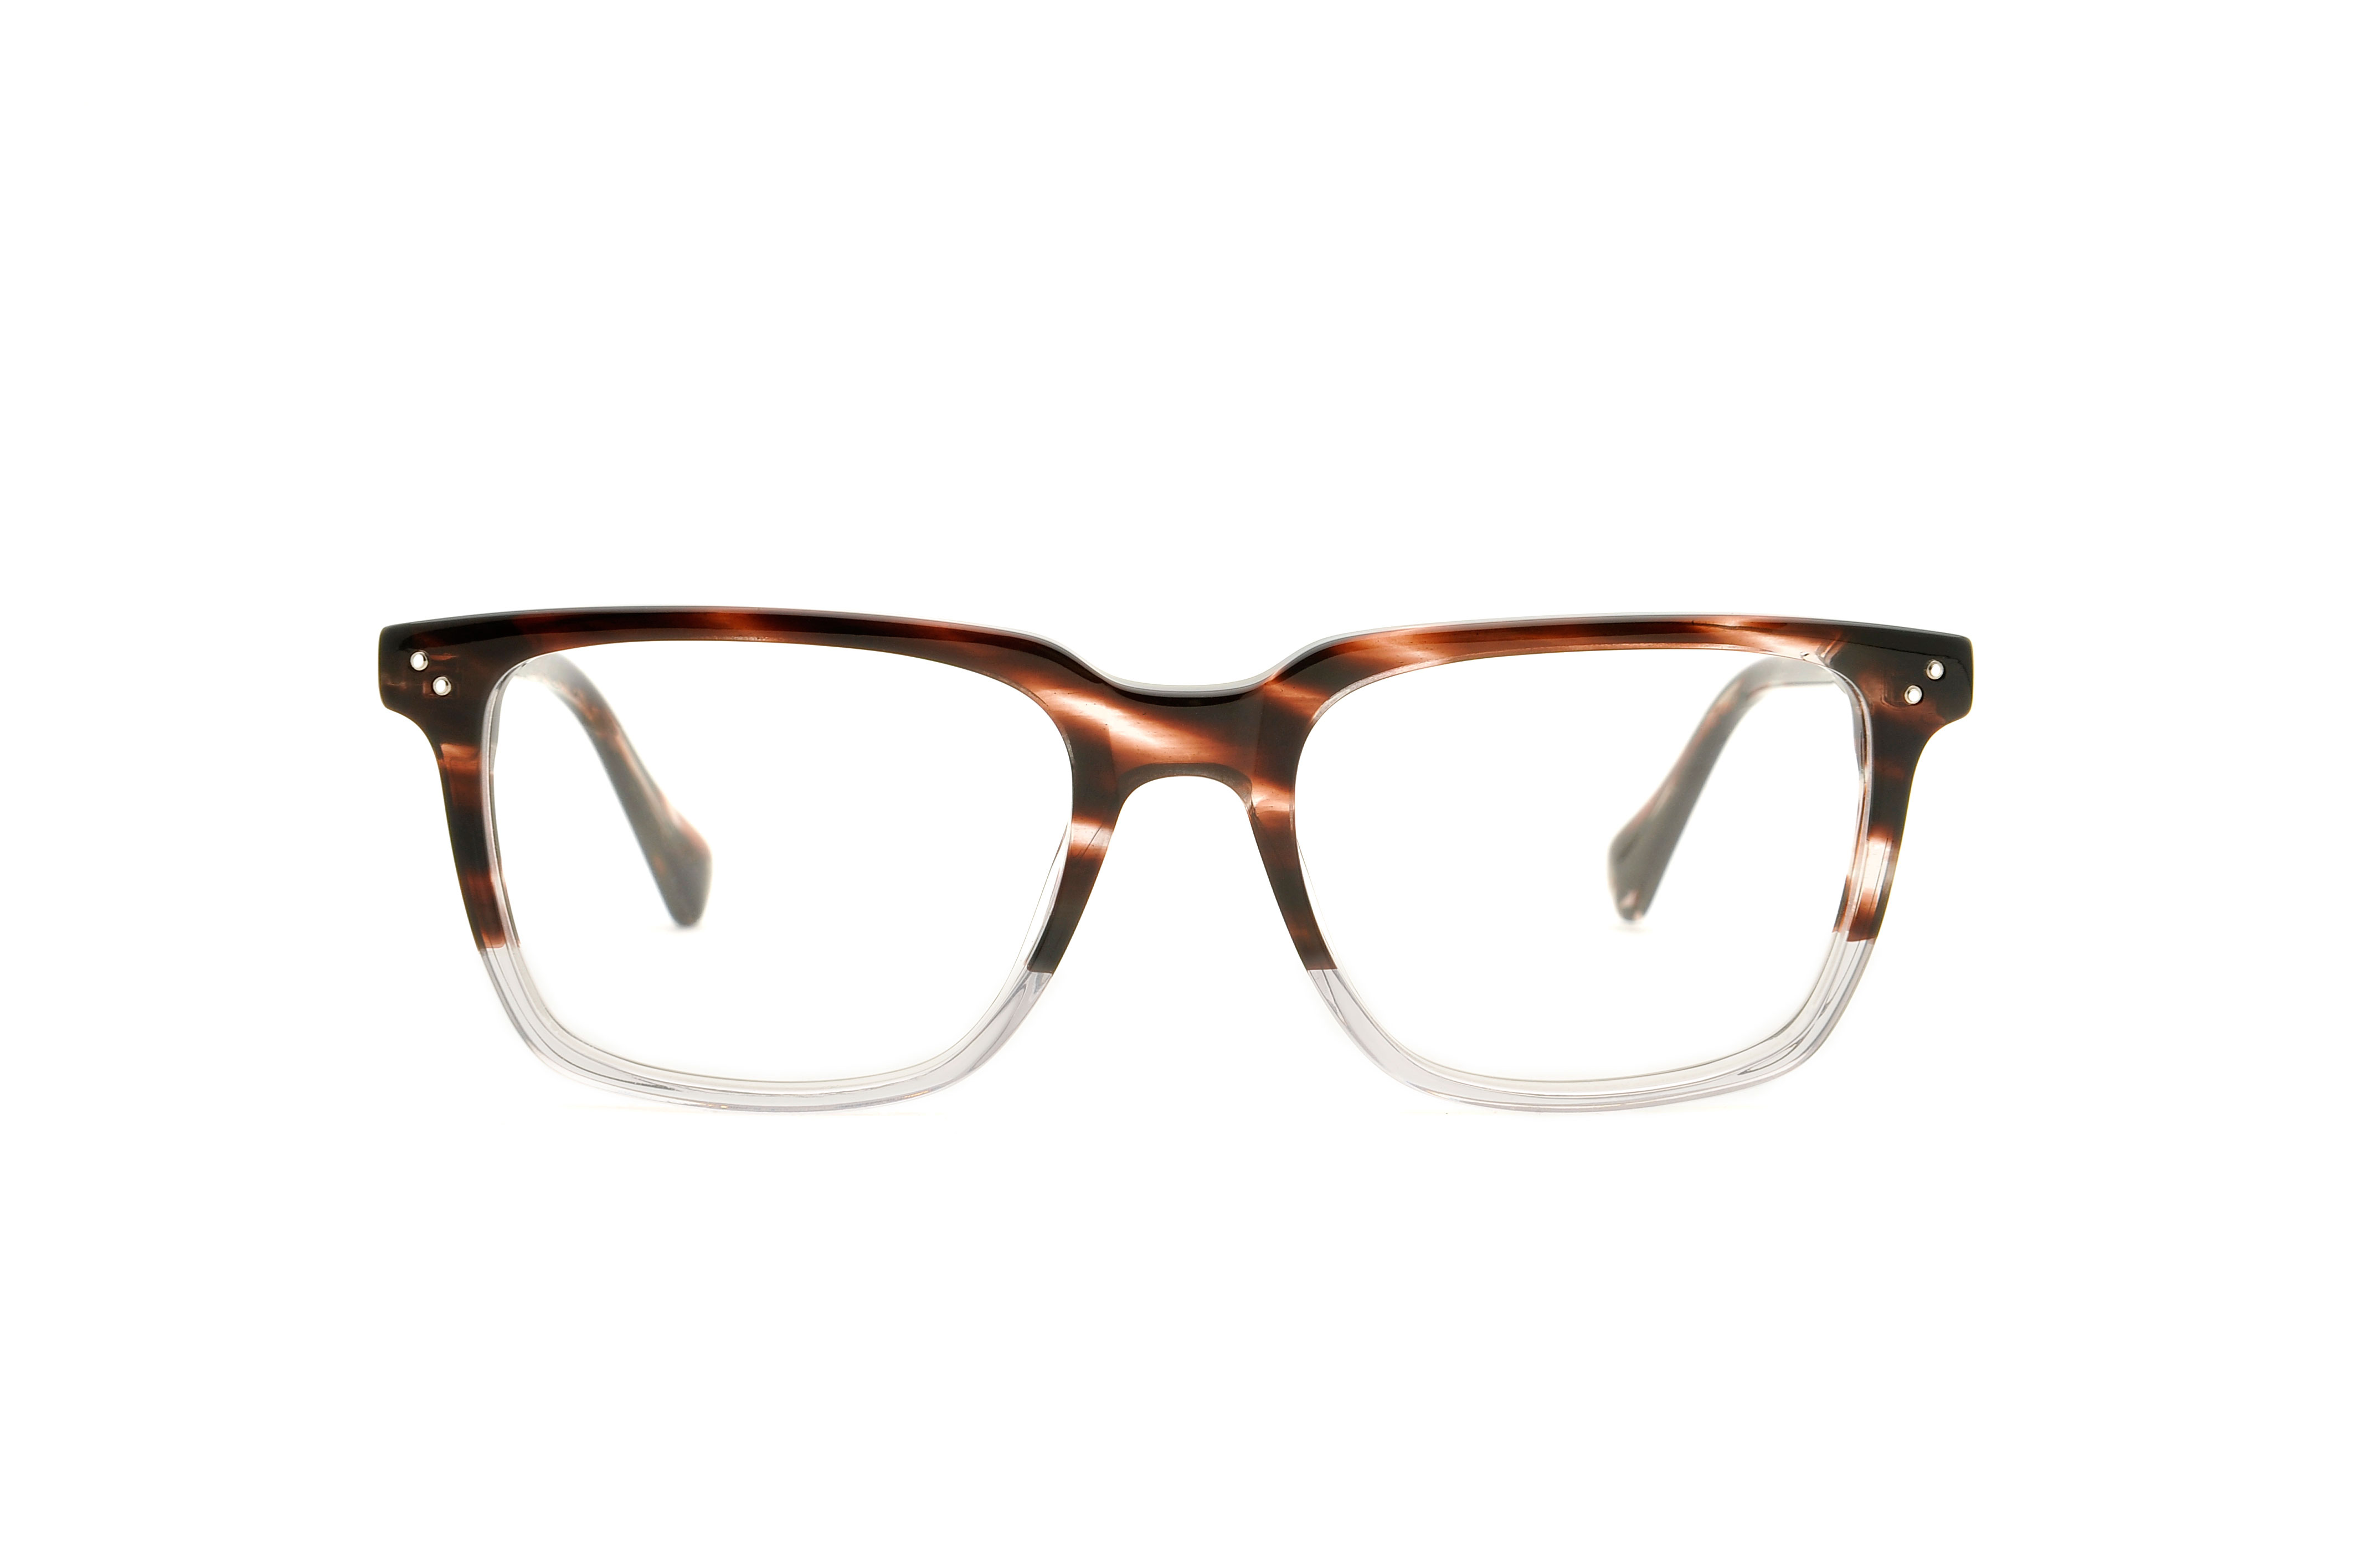 Prince acetate squared brown sunglasses by GIGI Studios